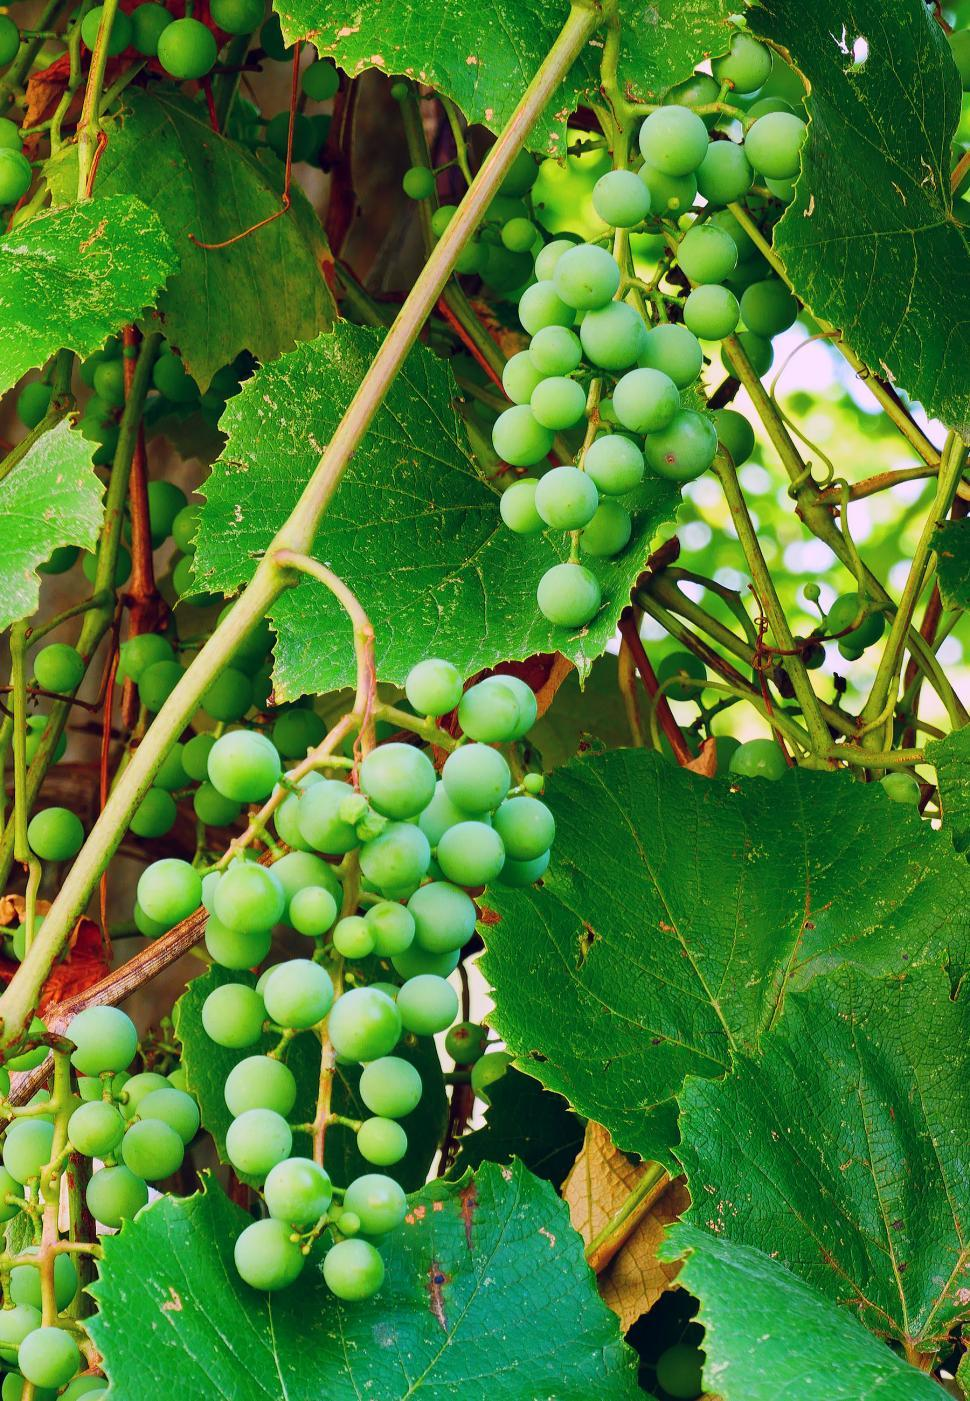 Download Free Stock Photo of Two Bunches of Green Young Concord Grapes